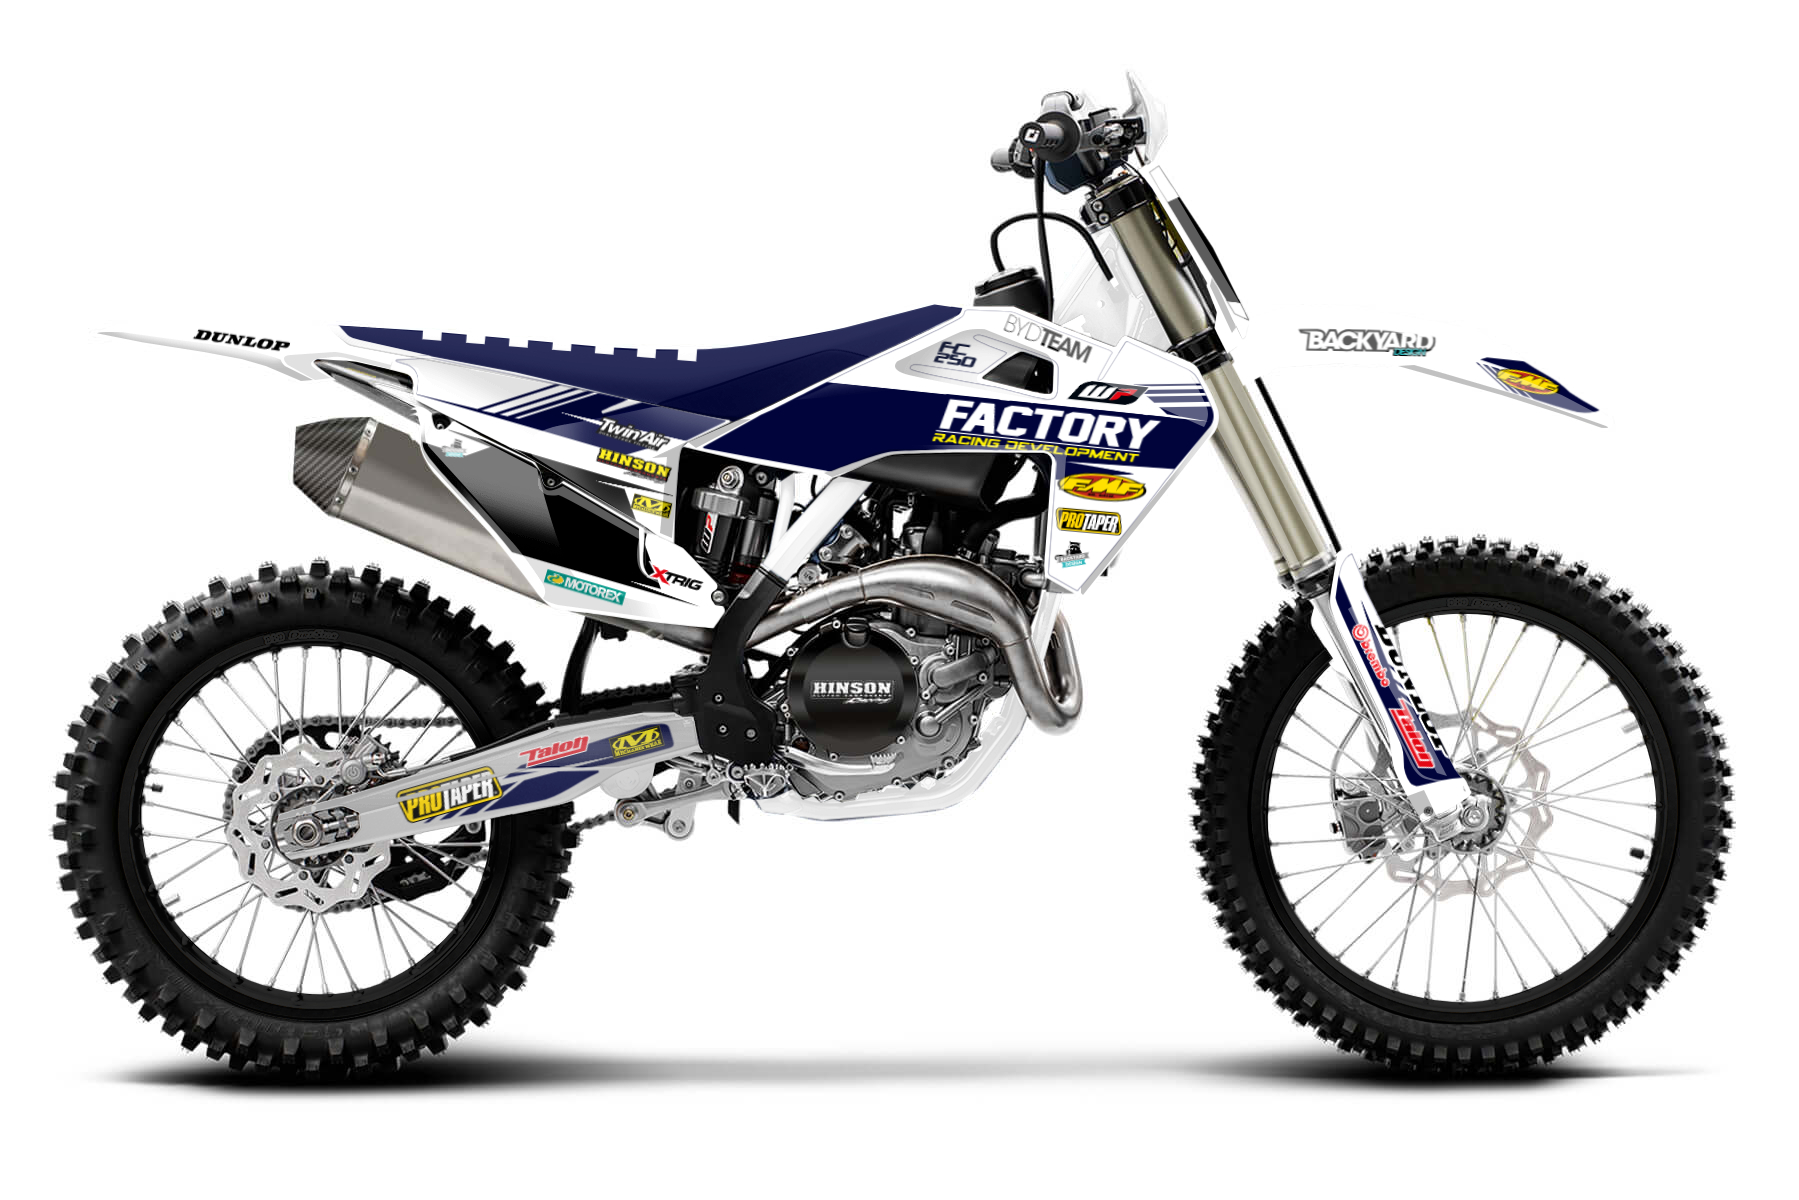 Husqvarna FC250 MX Graphic Kits  One of the best two-stroke bikes in the 250ccm class, the Husqvarana FC250 convinces you of its performance with sheer power and its ability to stay ahead of the competition.